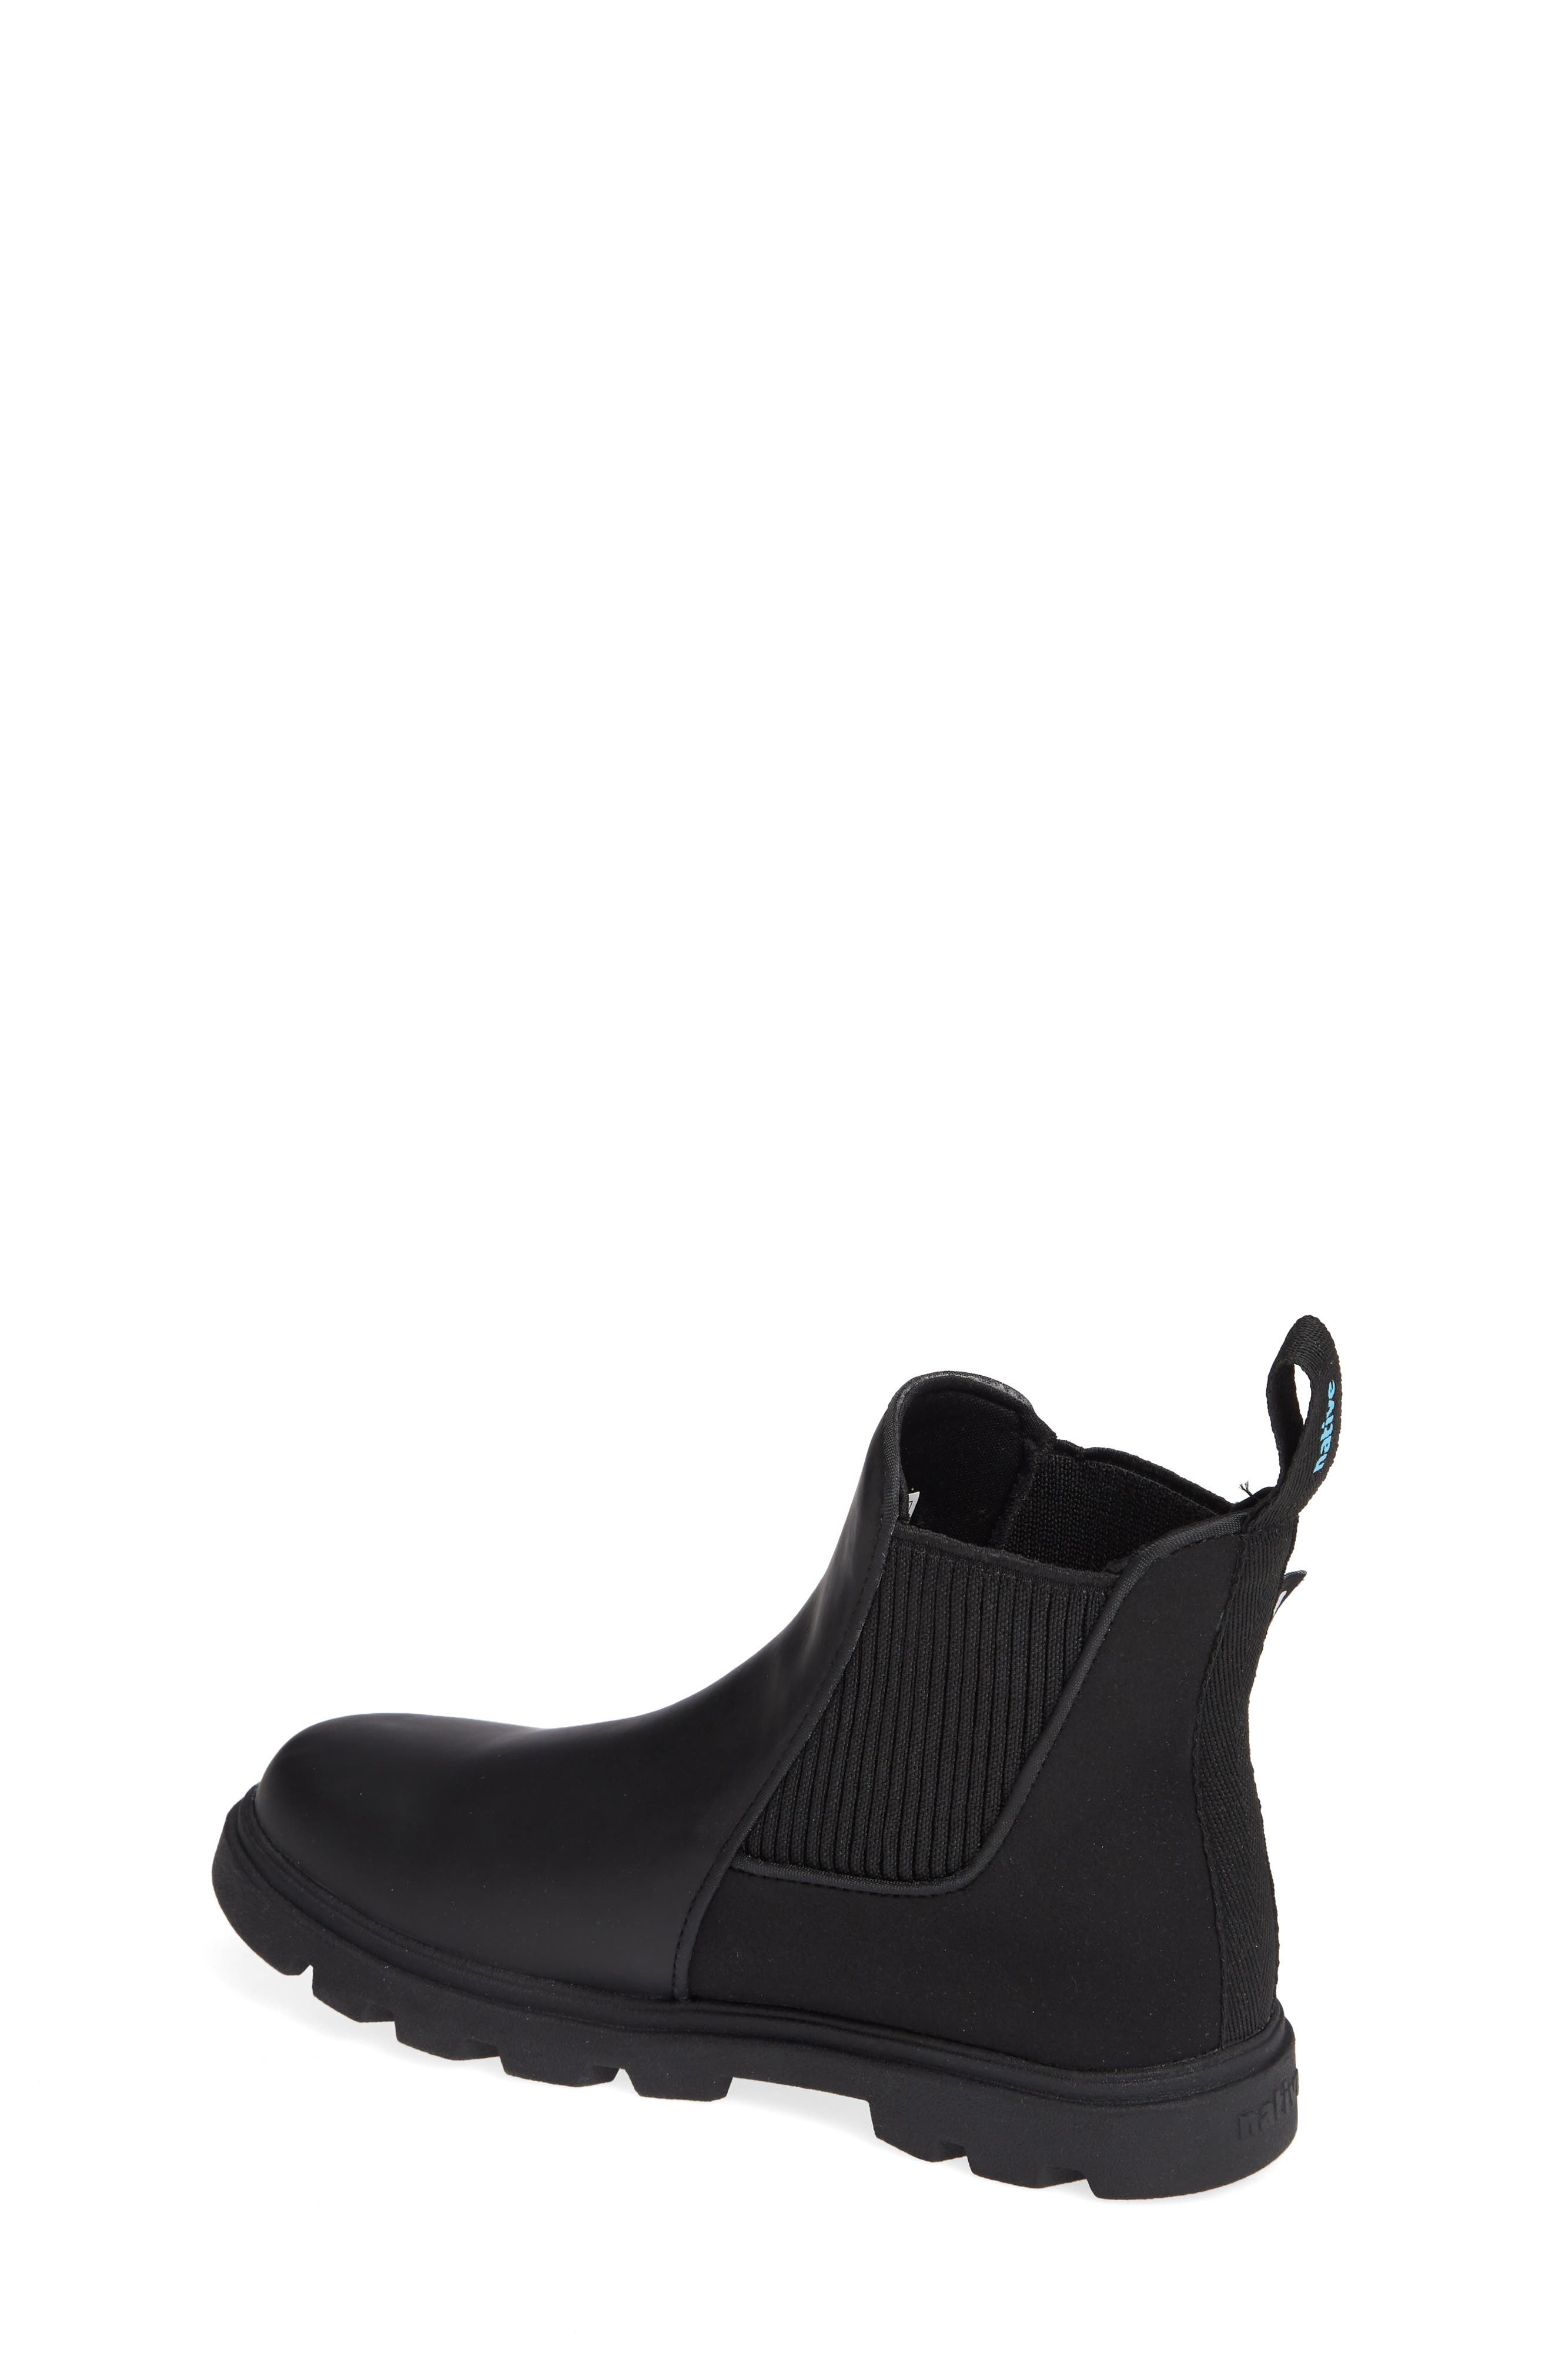 Kensington Treklite Vegan Leather Chelsea Bootie,                             Alternate thumbnail 2, color,                             JIFFY BLACK